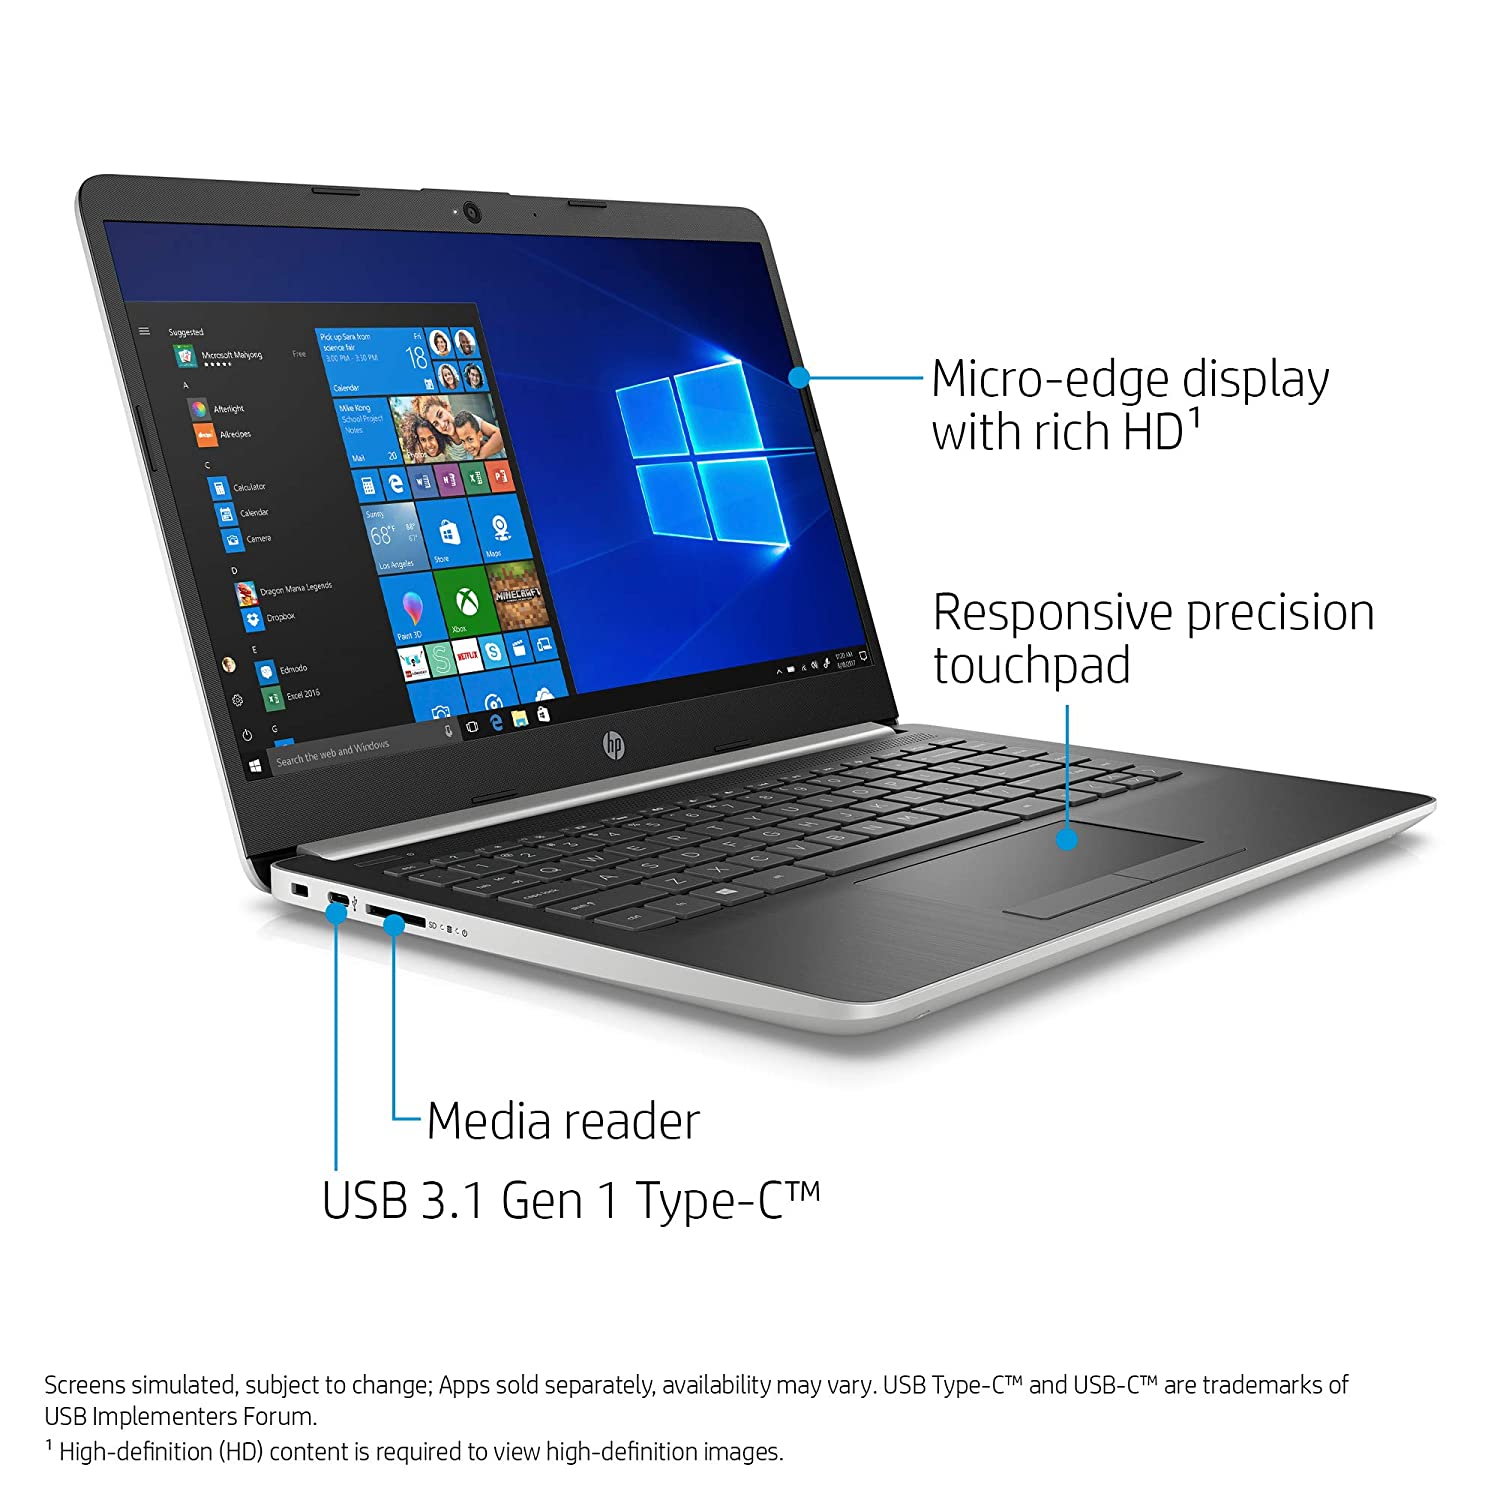 Amazon.com: HP 14-inch Laptop, 8th Generation Intel Core i3-8130U Processor, 4 GB SDRAM, 128 GB Solid State Drive, Windows 10 Home in S Mode (14-df0020nr, ...